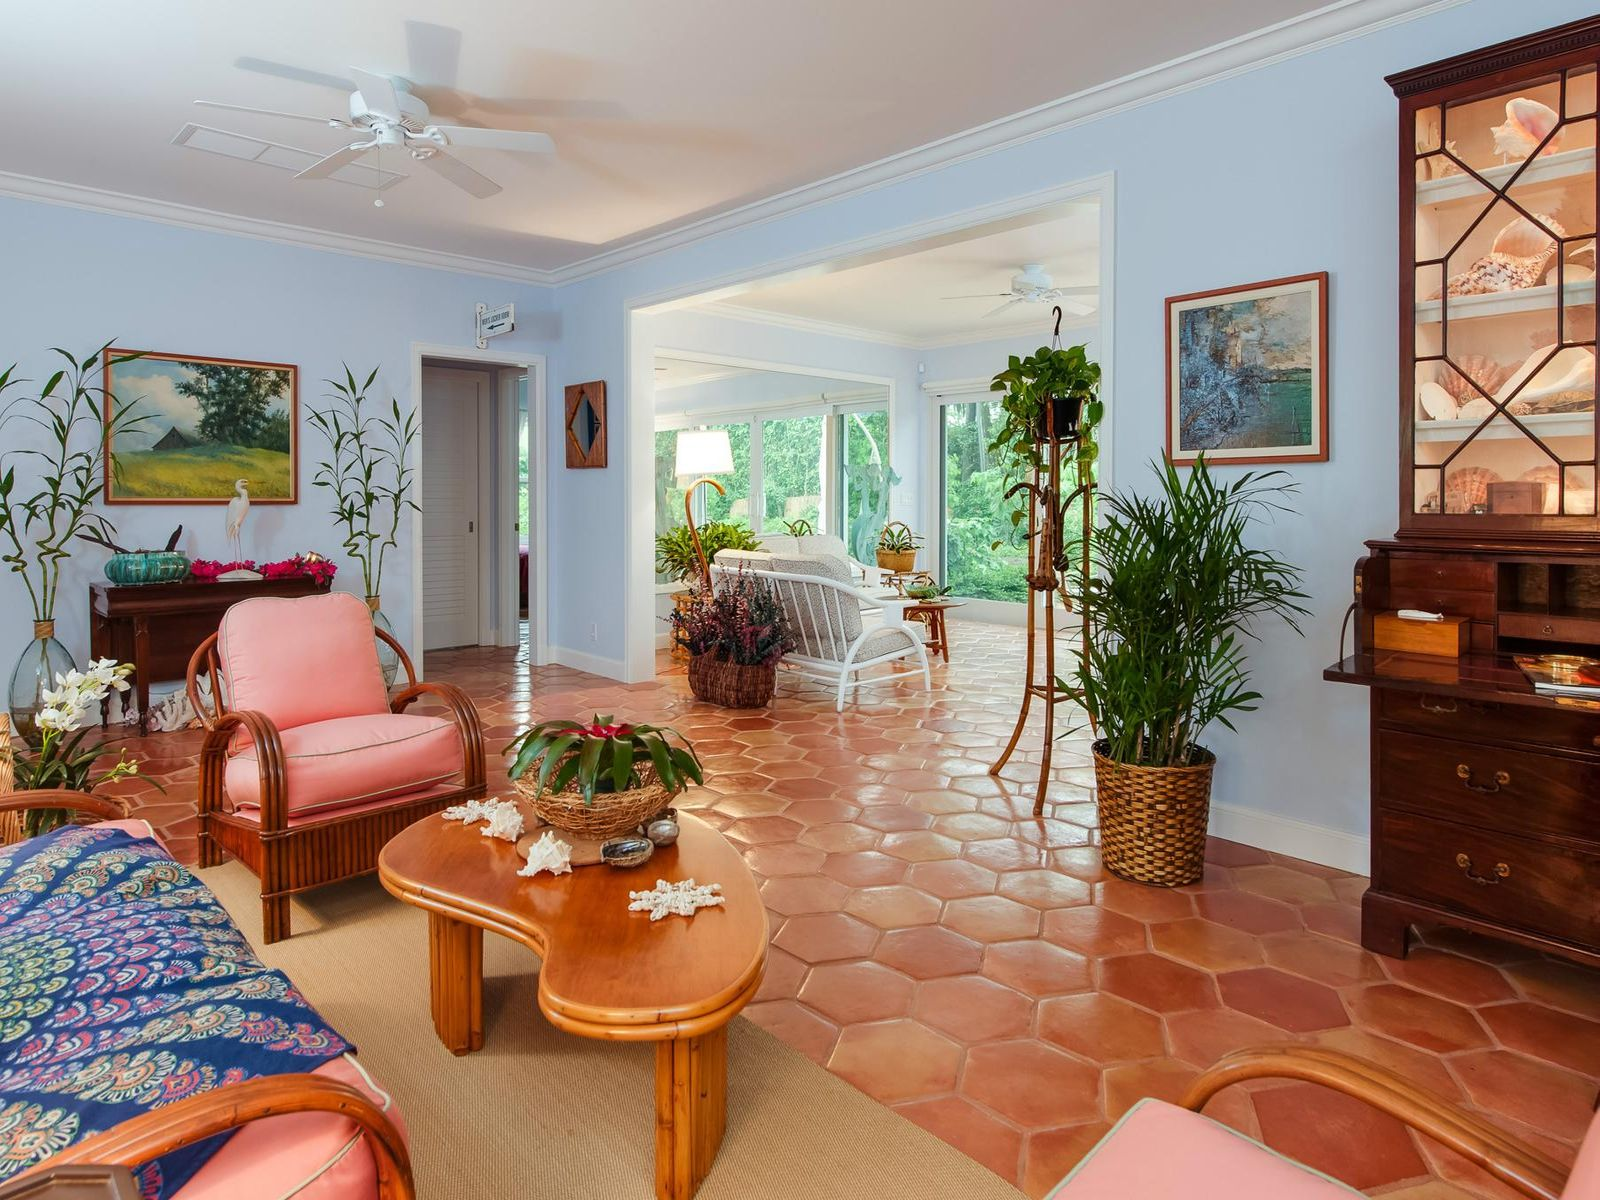 Tropical Beach House, Palm Beach FL Single Family Home - Palm Beach Real Estate